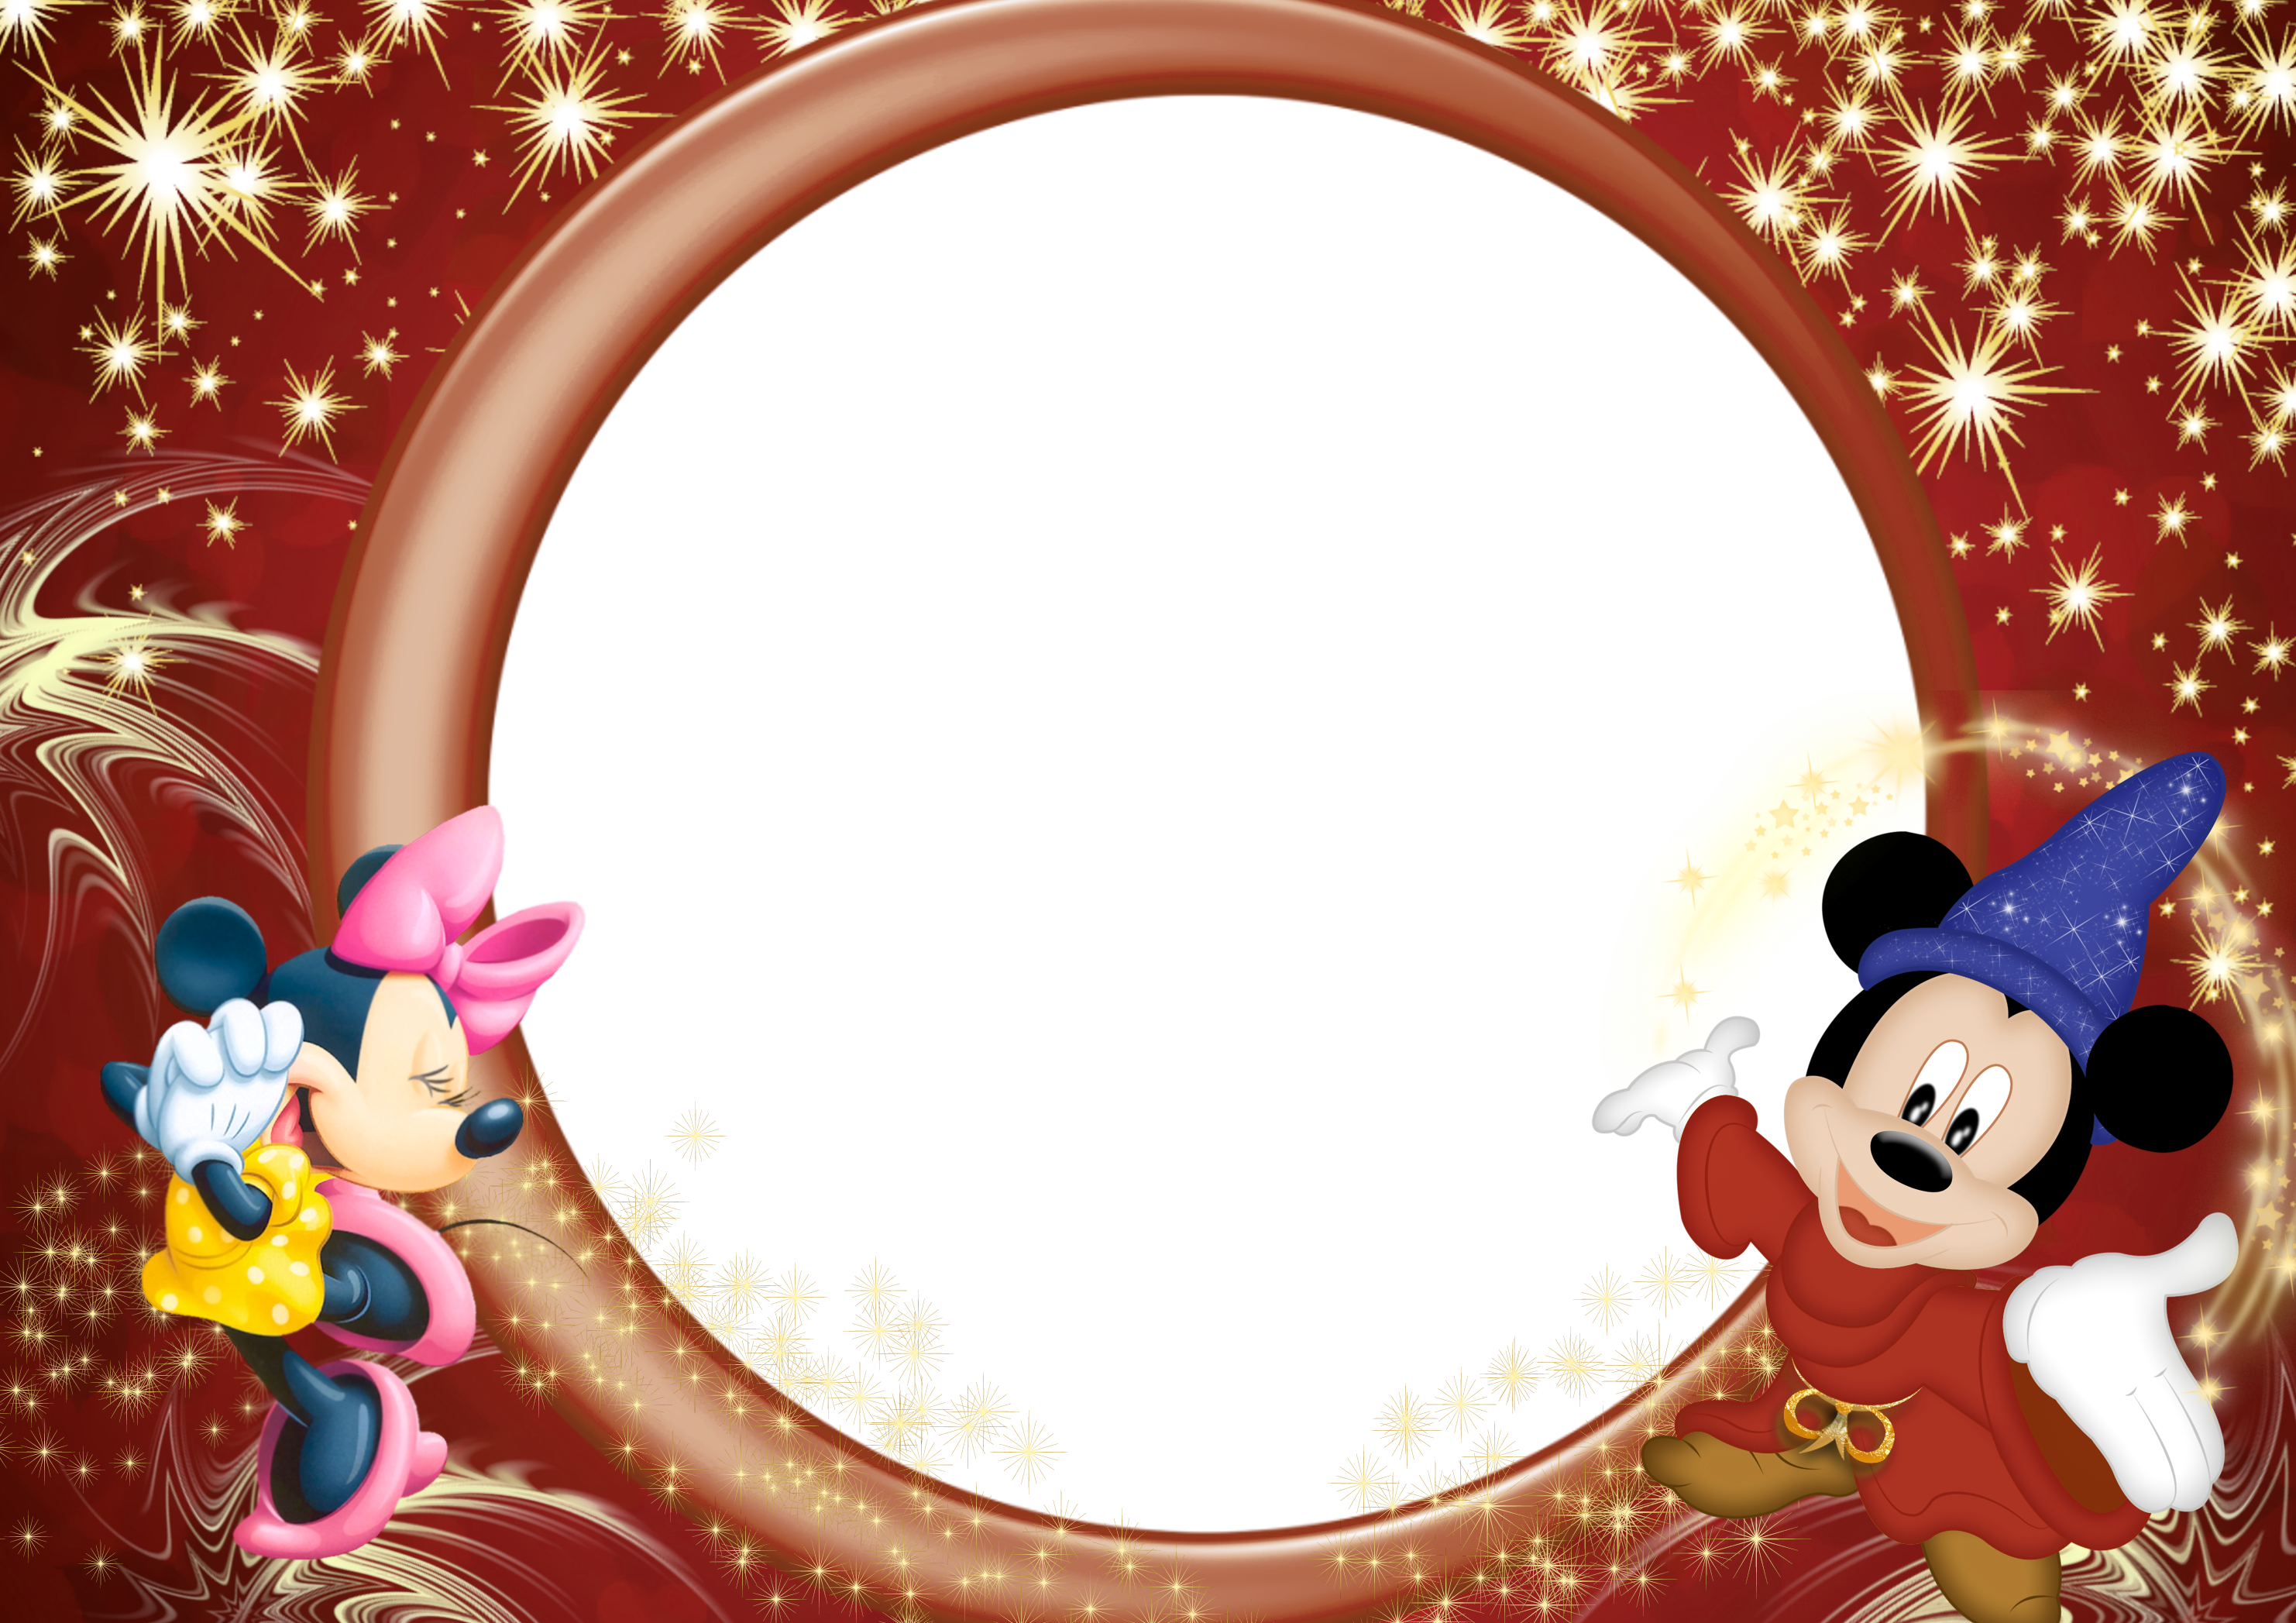 Hands clipart frame. Minnie and mickey transparent